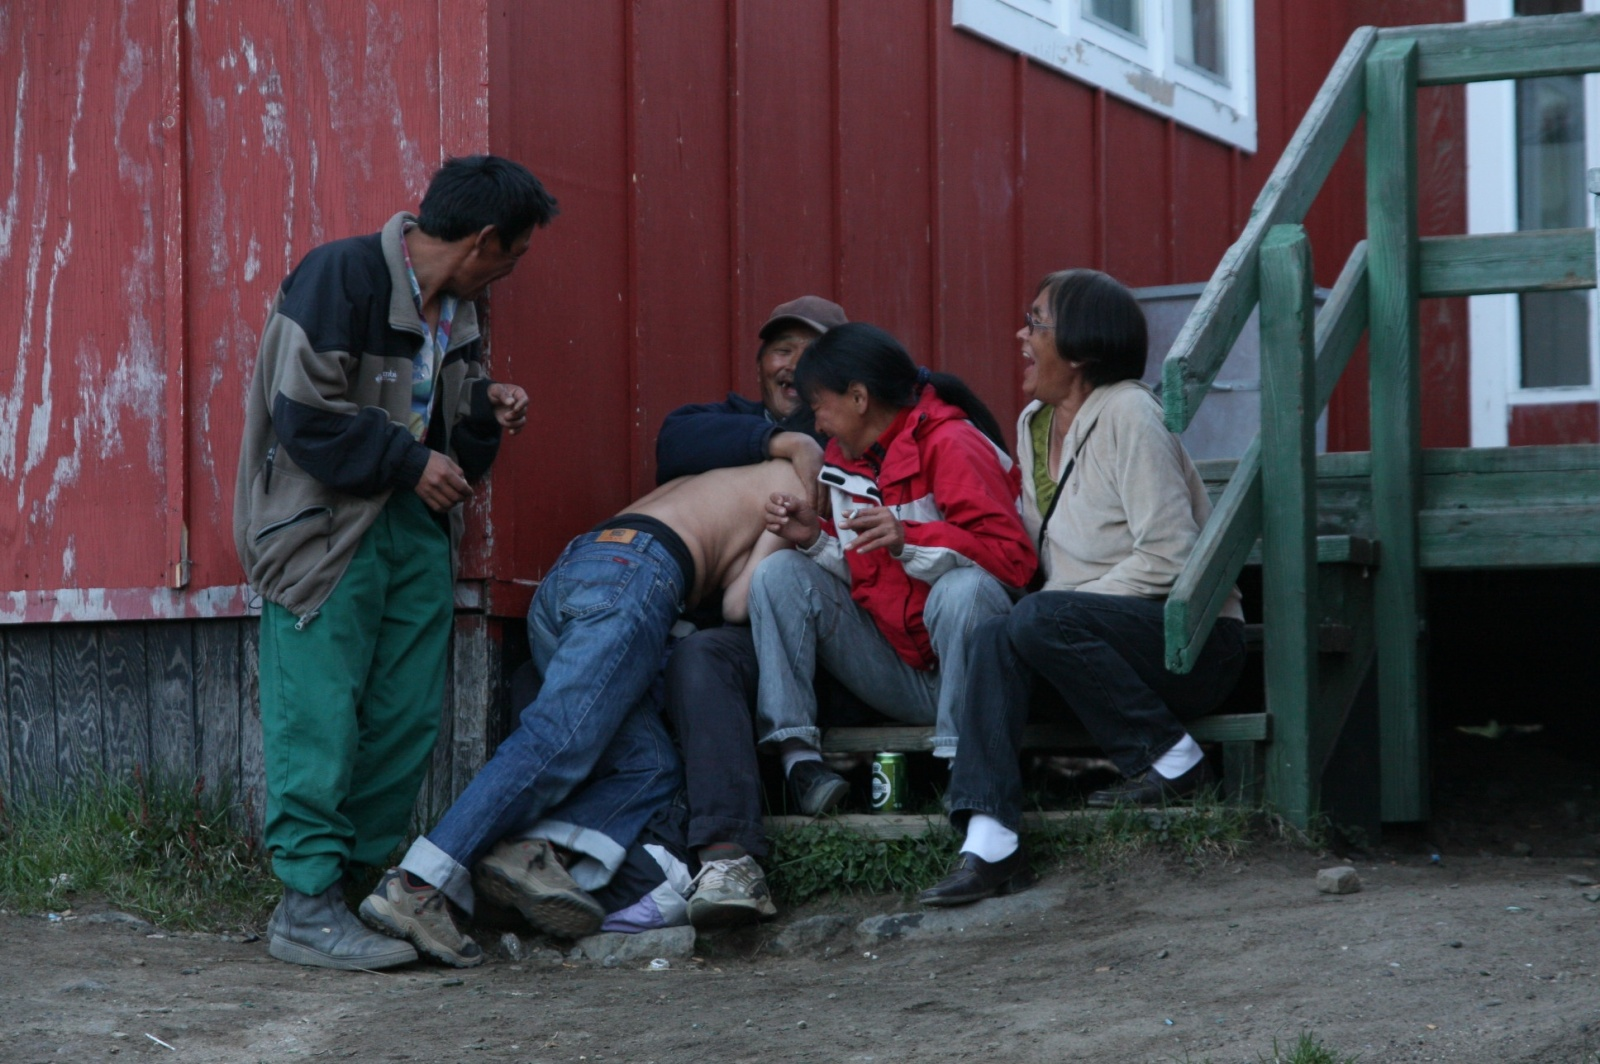 Greenlandic nightlife and party people